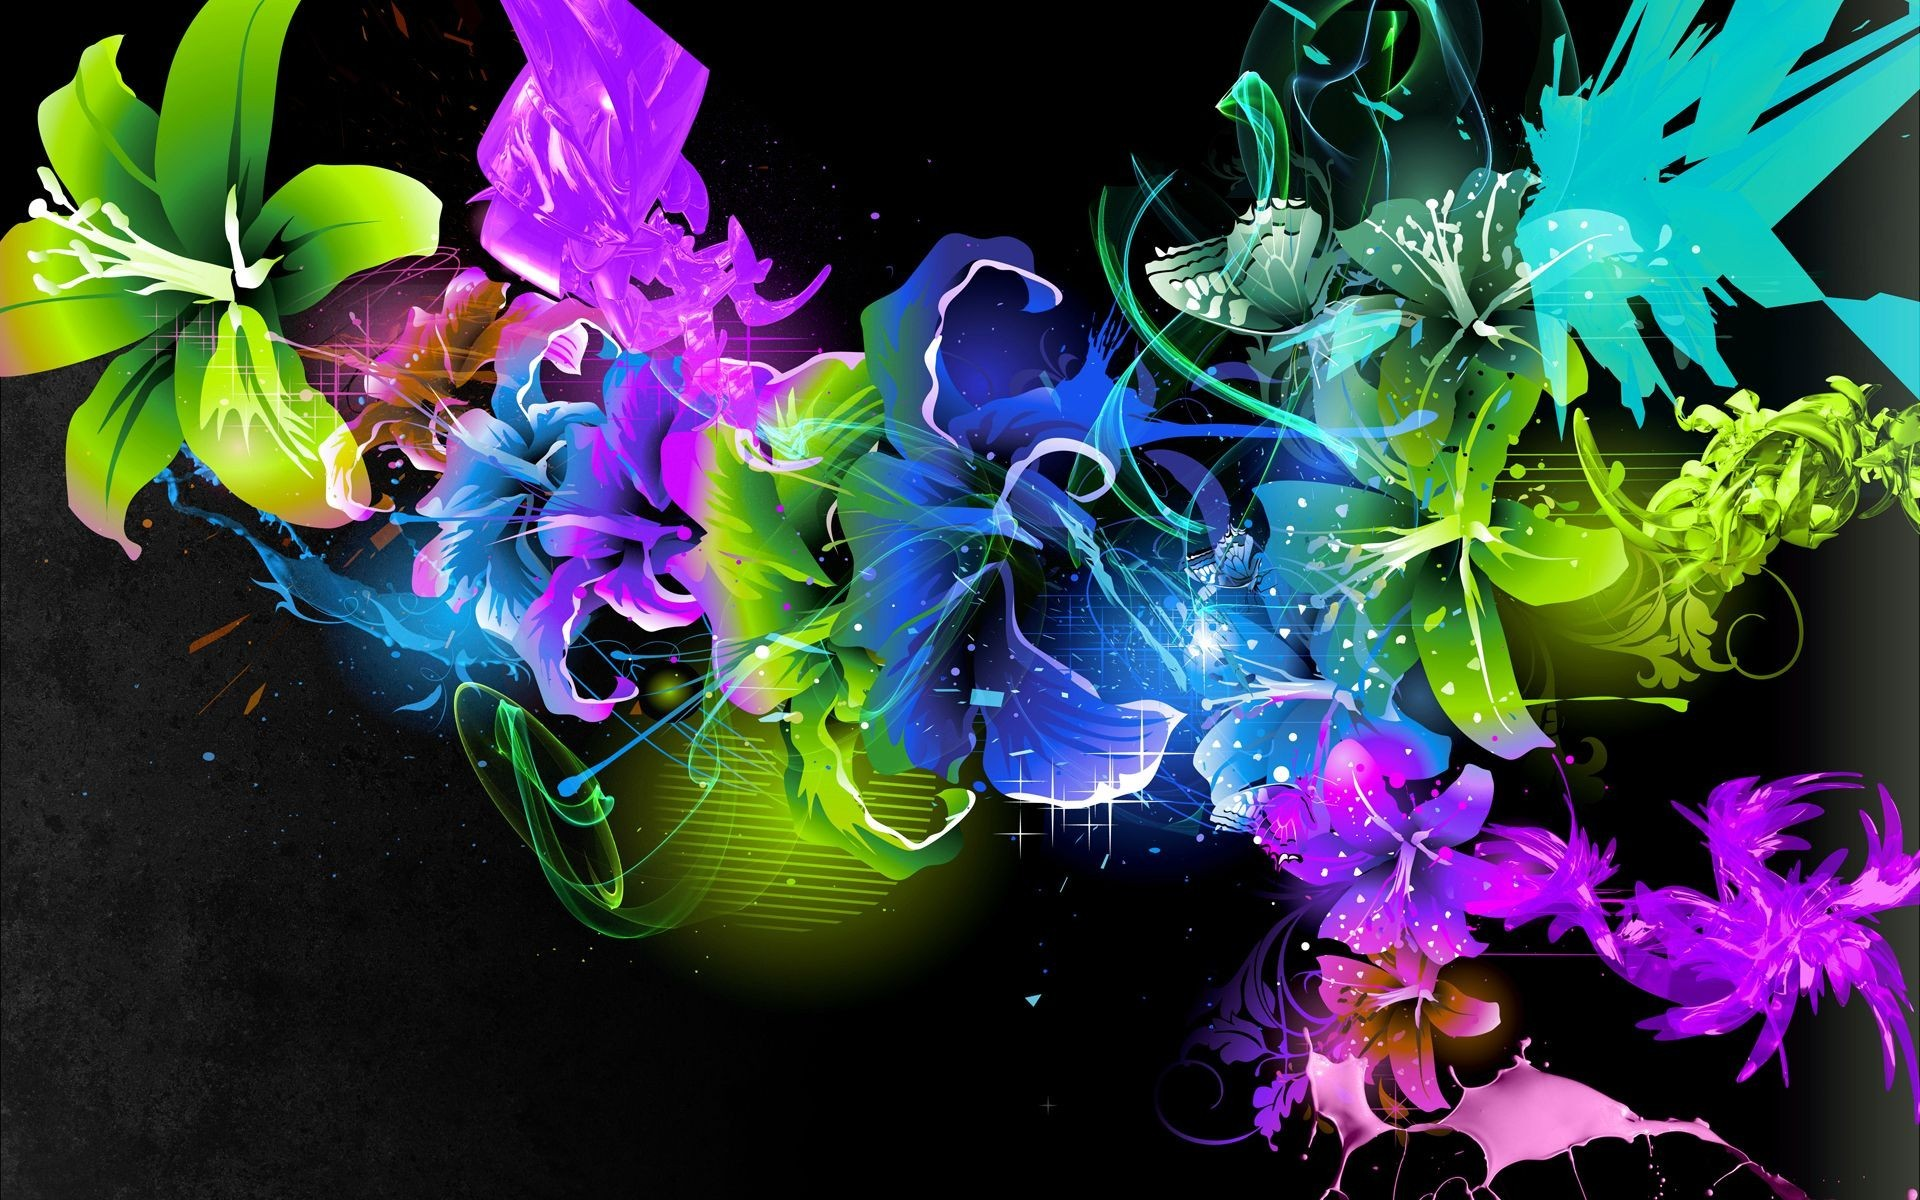 Color Abstract Wallpaper | HD Wallpaper